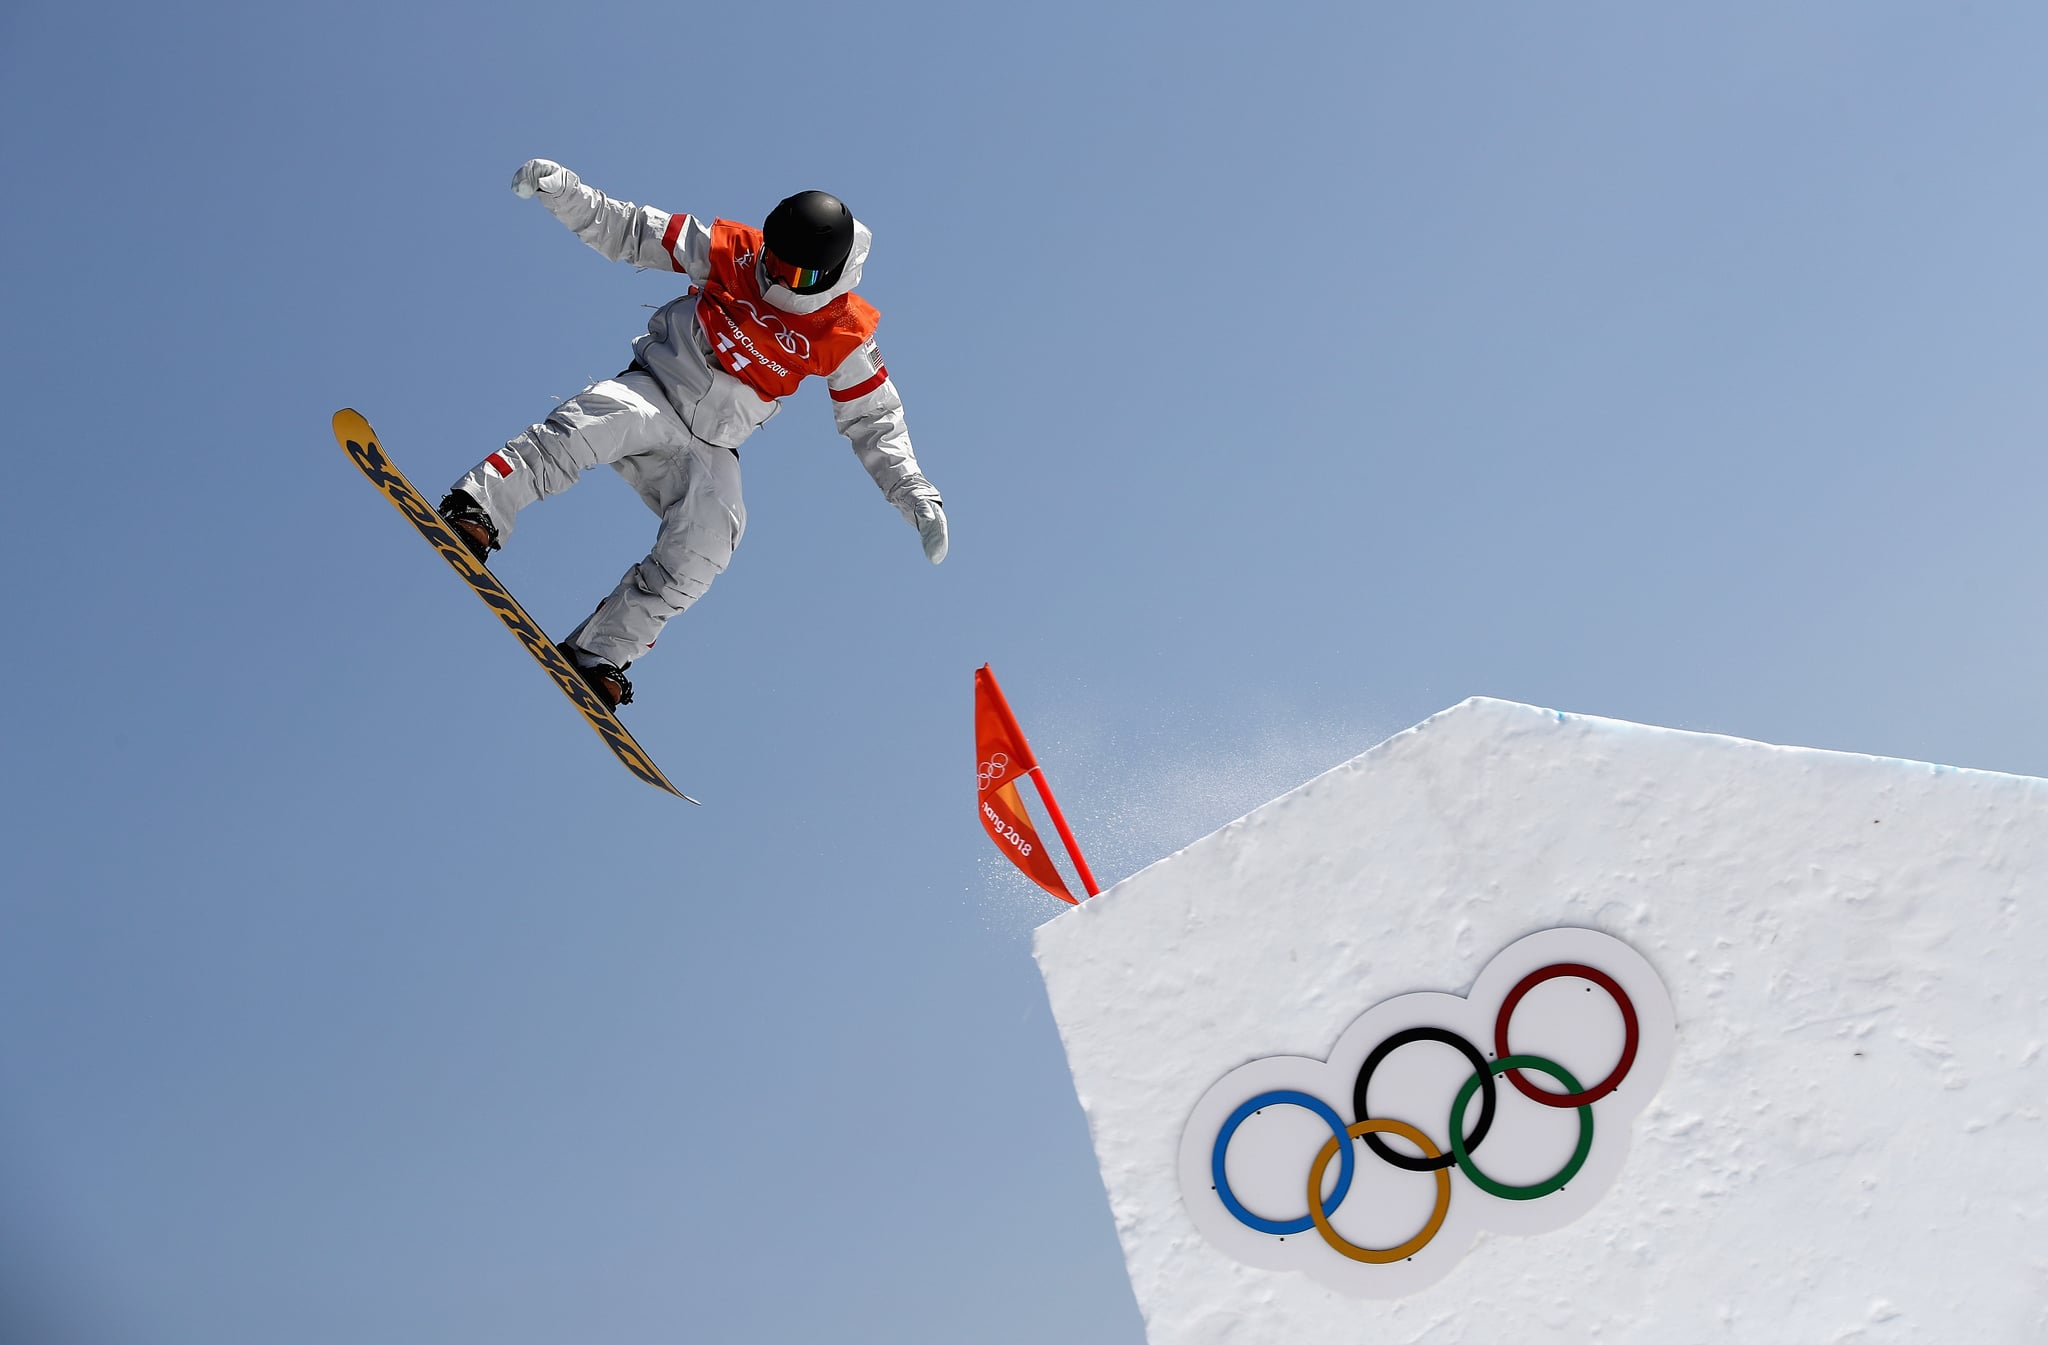 Canada's Toutant wins gold in snowboard big air at Olympic Games